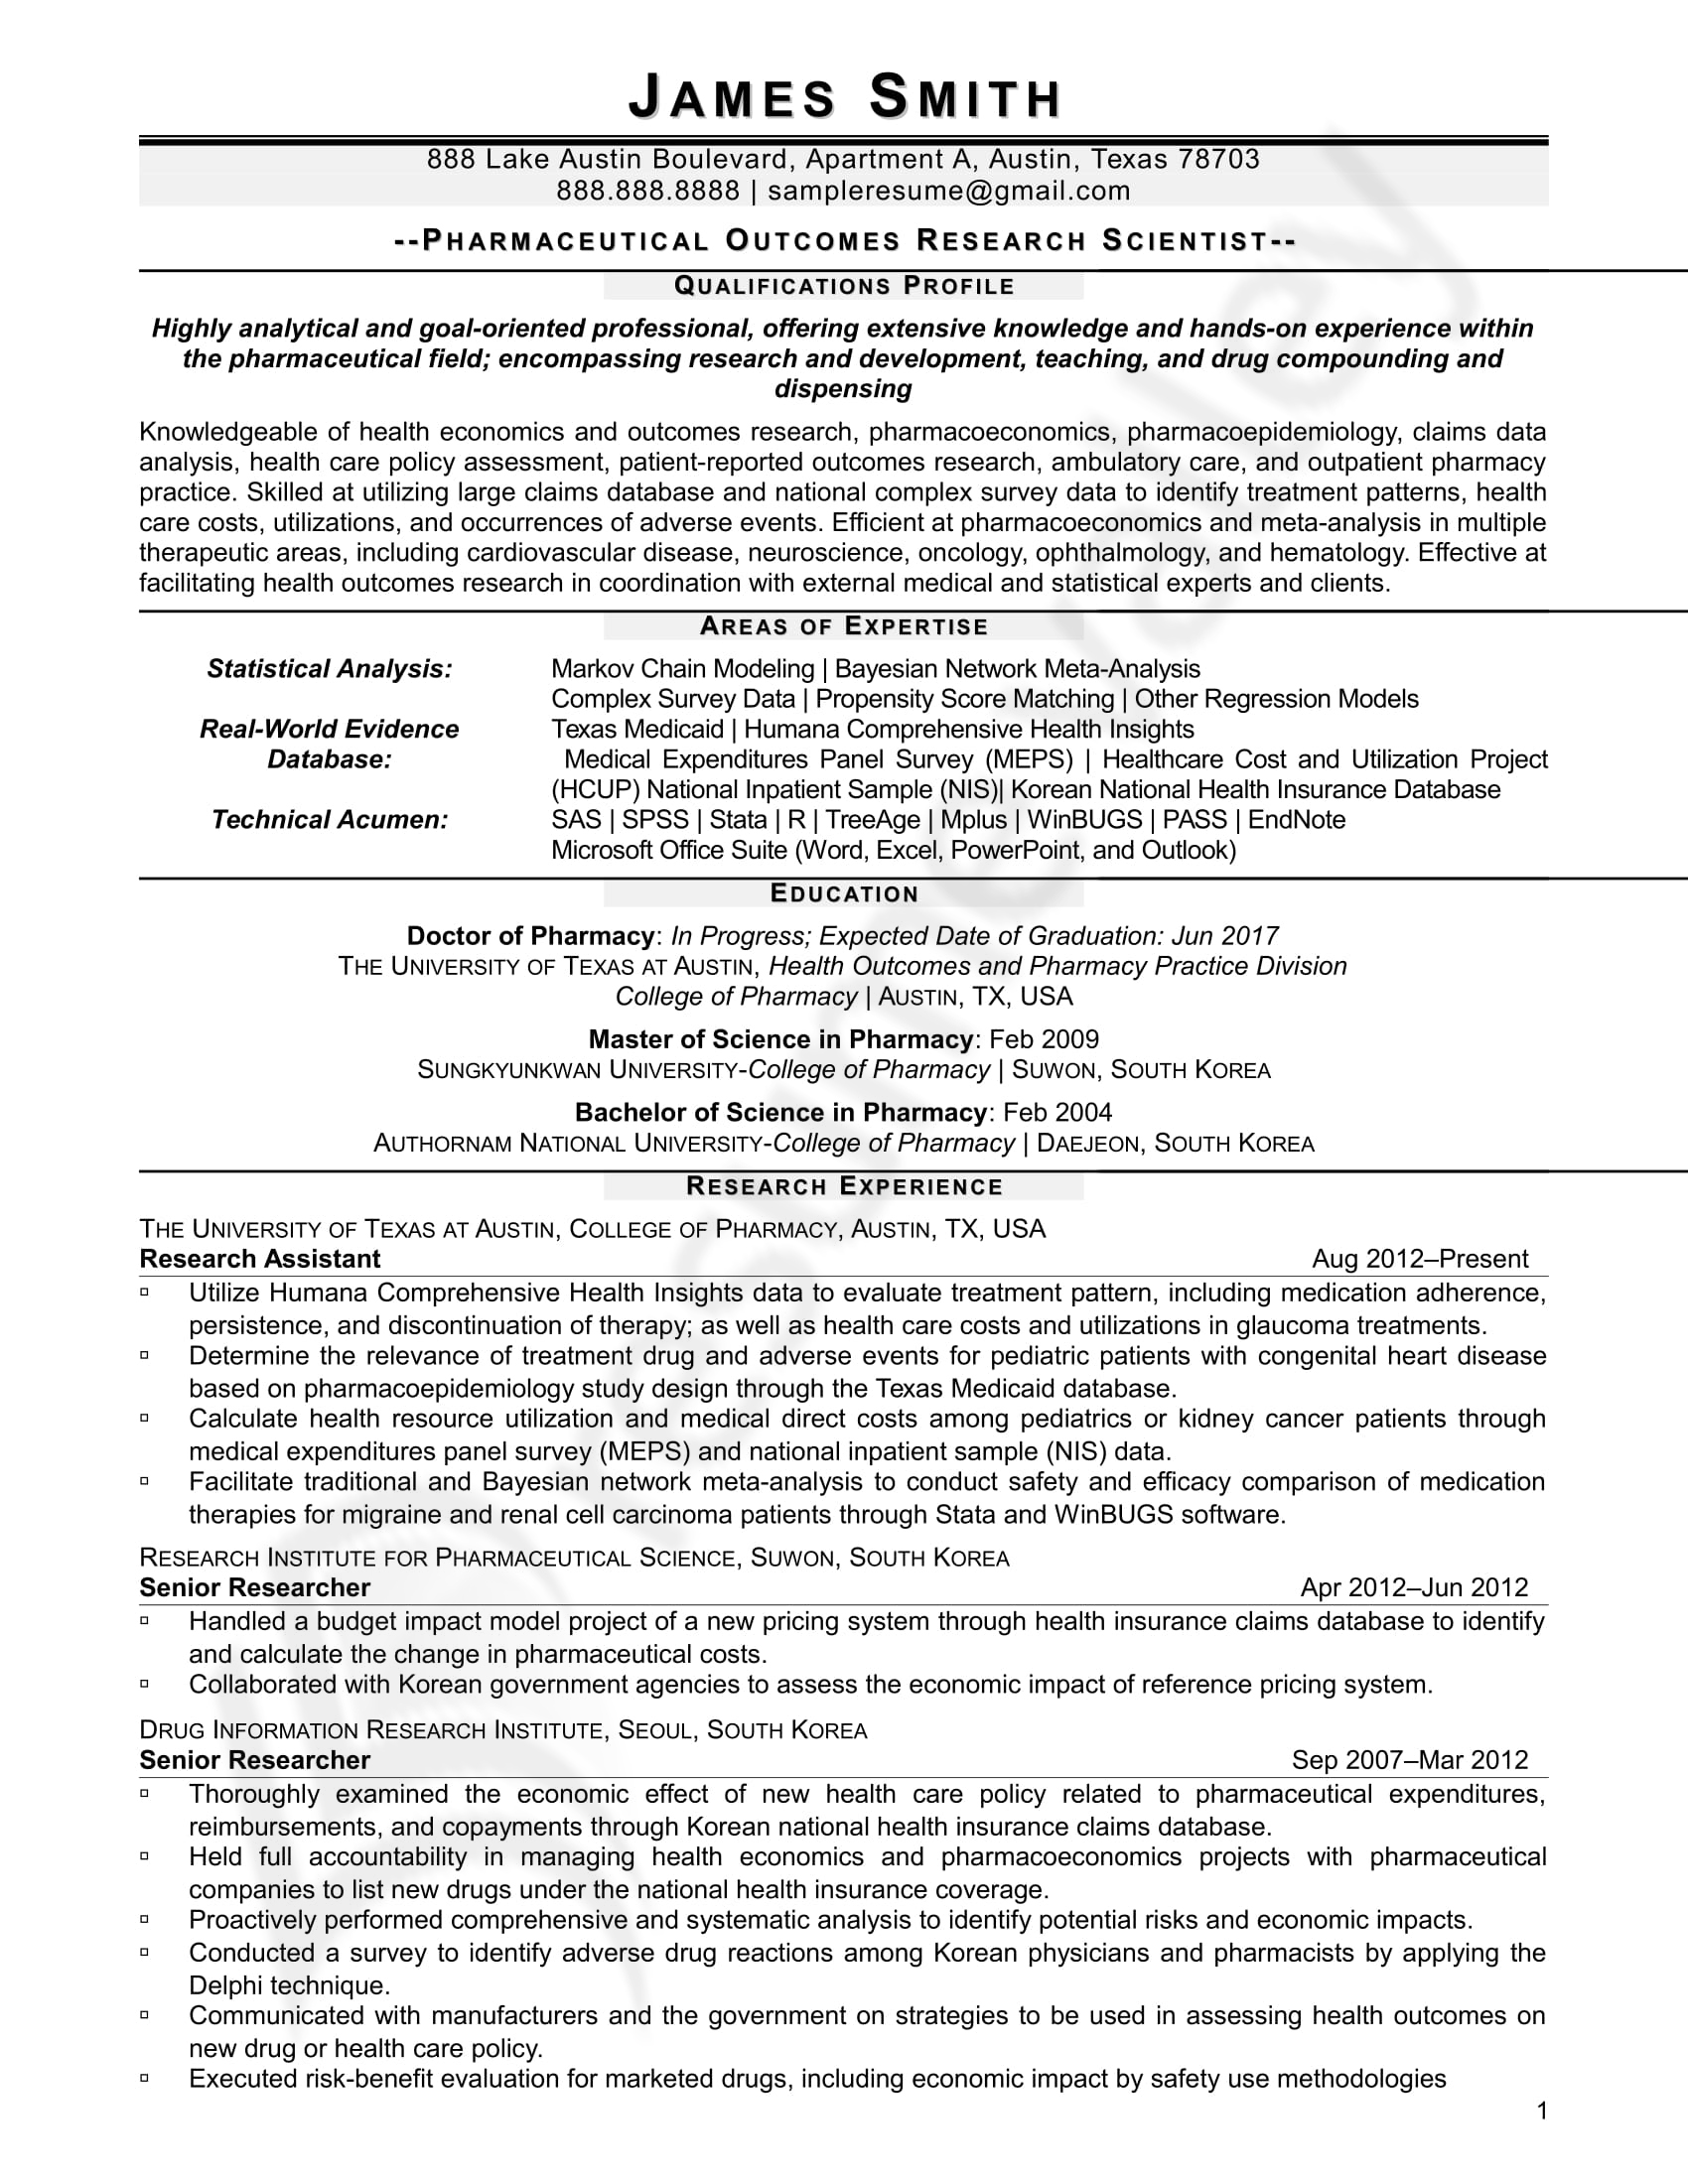 Research Scientist_Curriculum Vitae